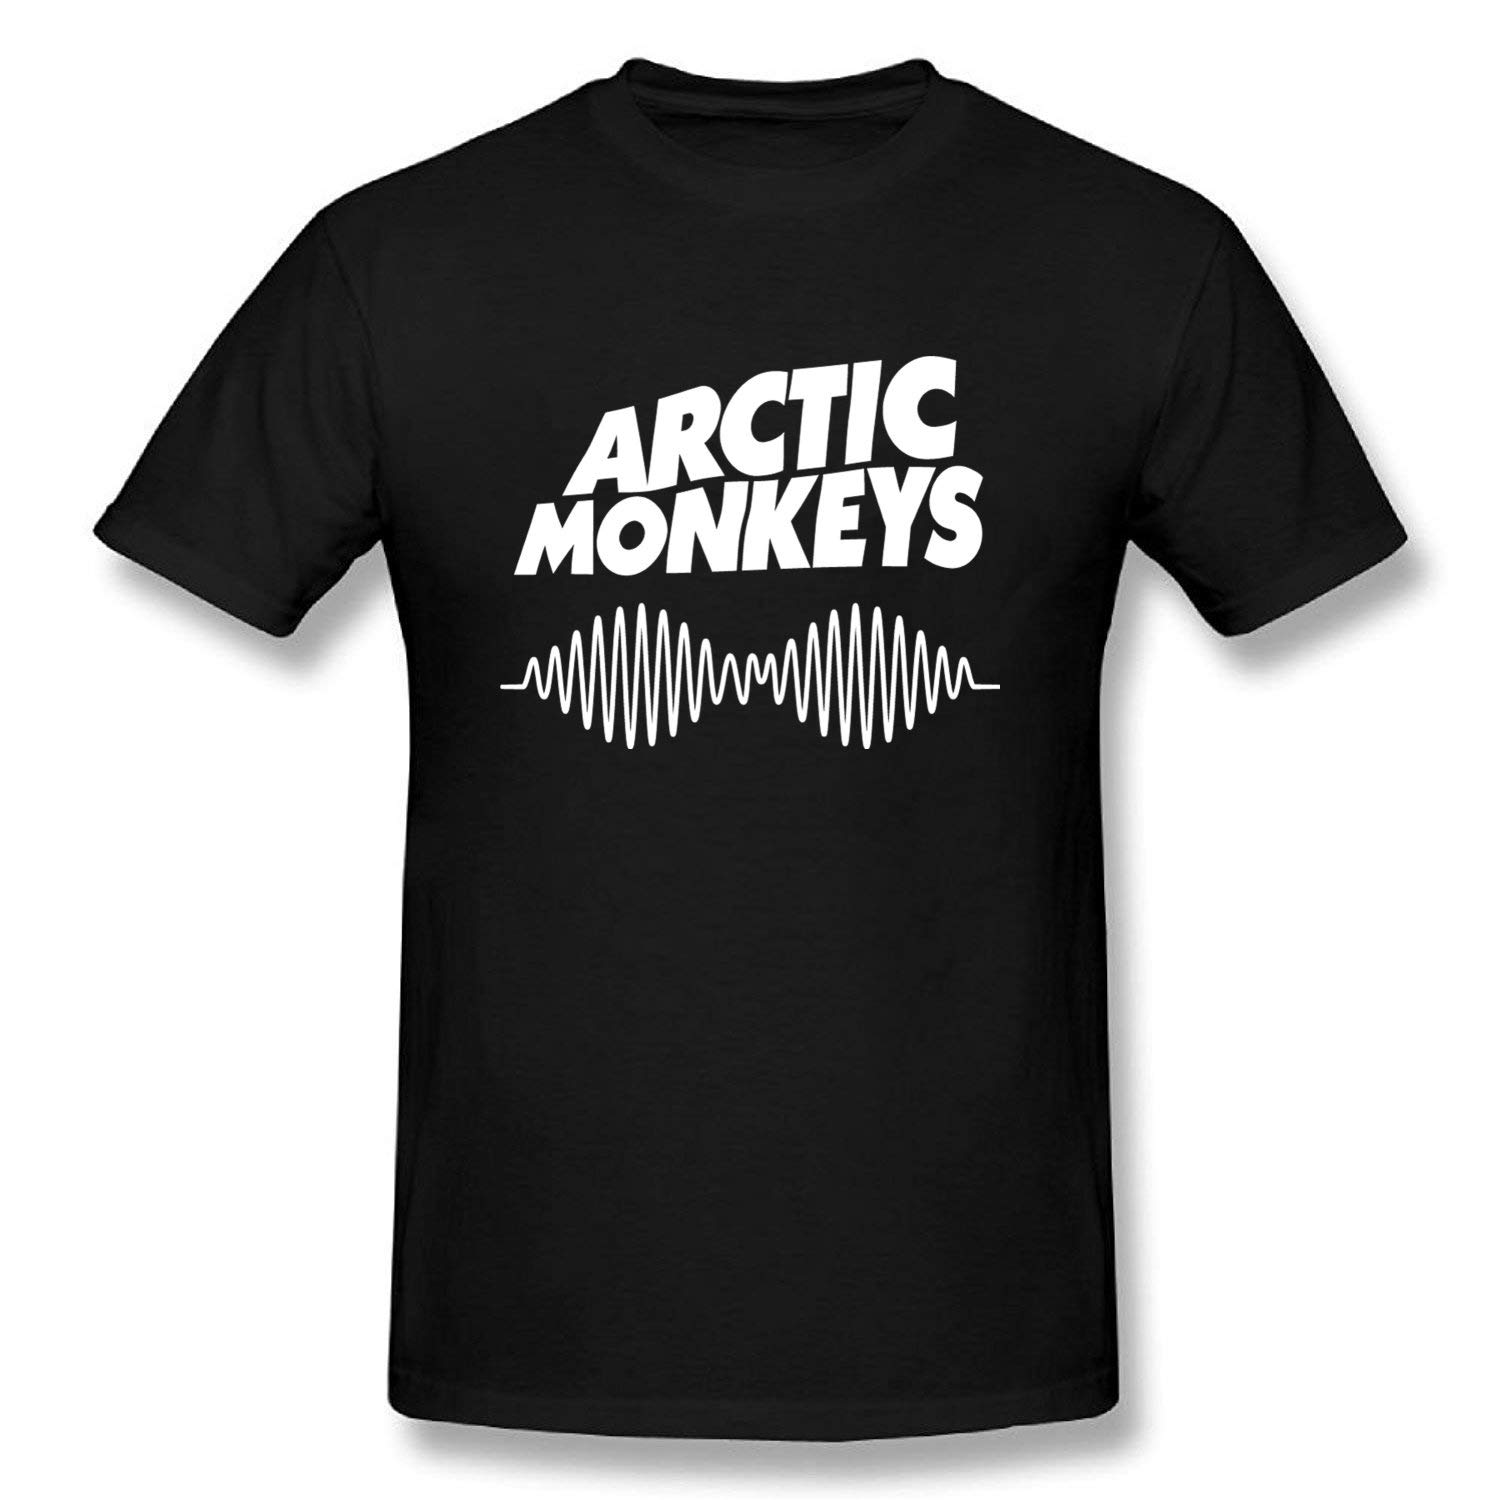 SepreanTee Men 39 s Custom Arctic Monkeys T Shirts Free shipping newest Fashion Classic Funny Unique gift in T Shirts from Men 39 s Clothing